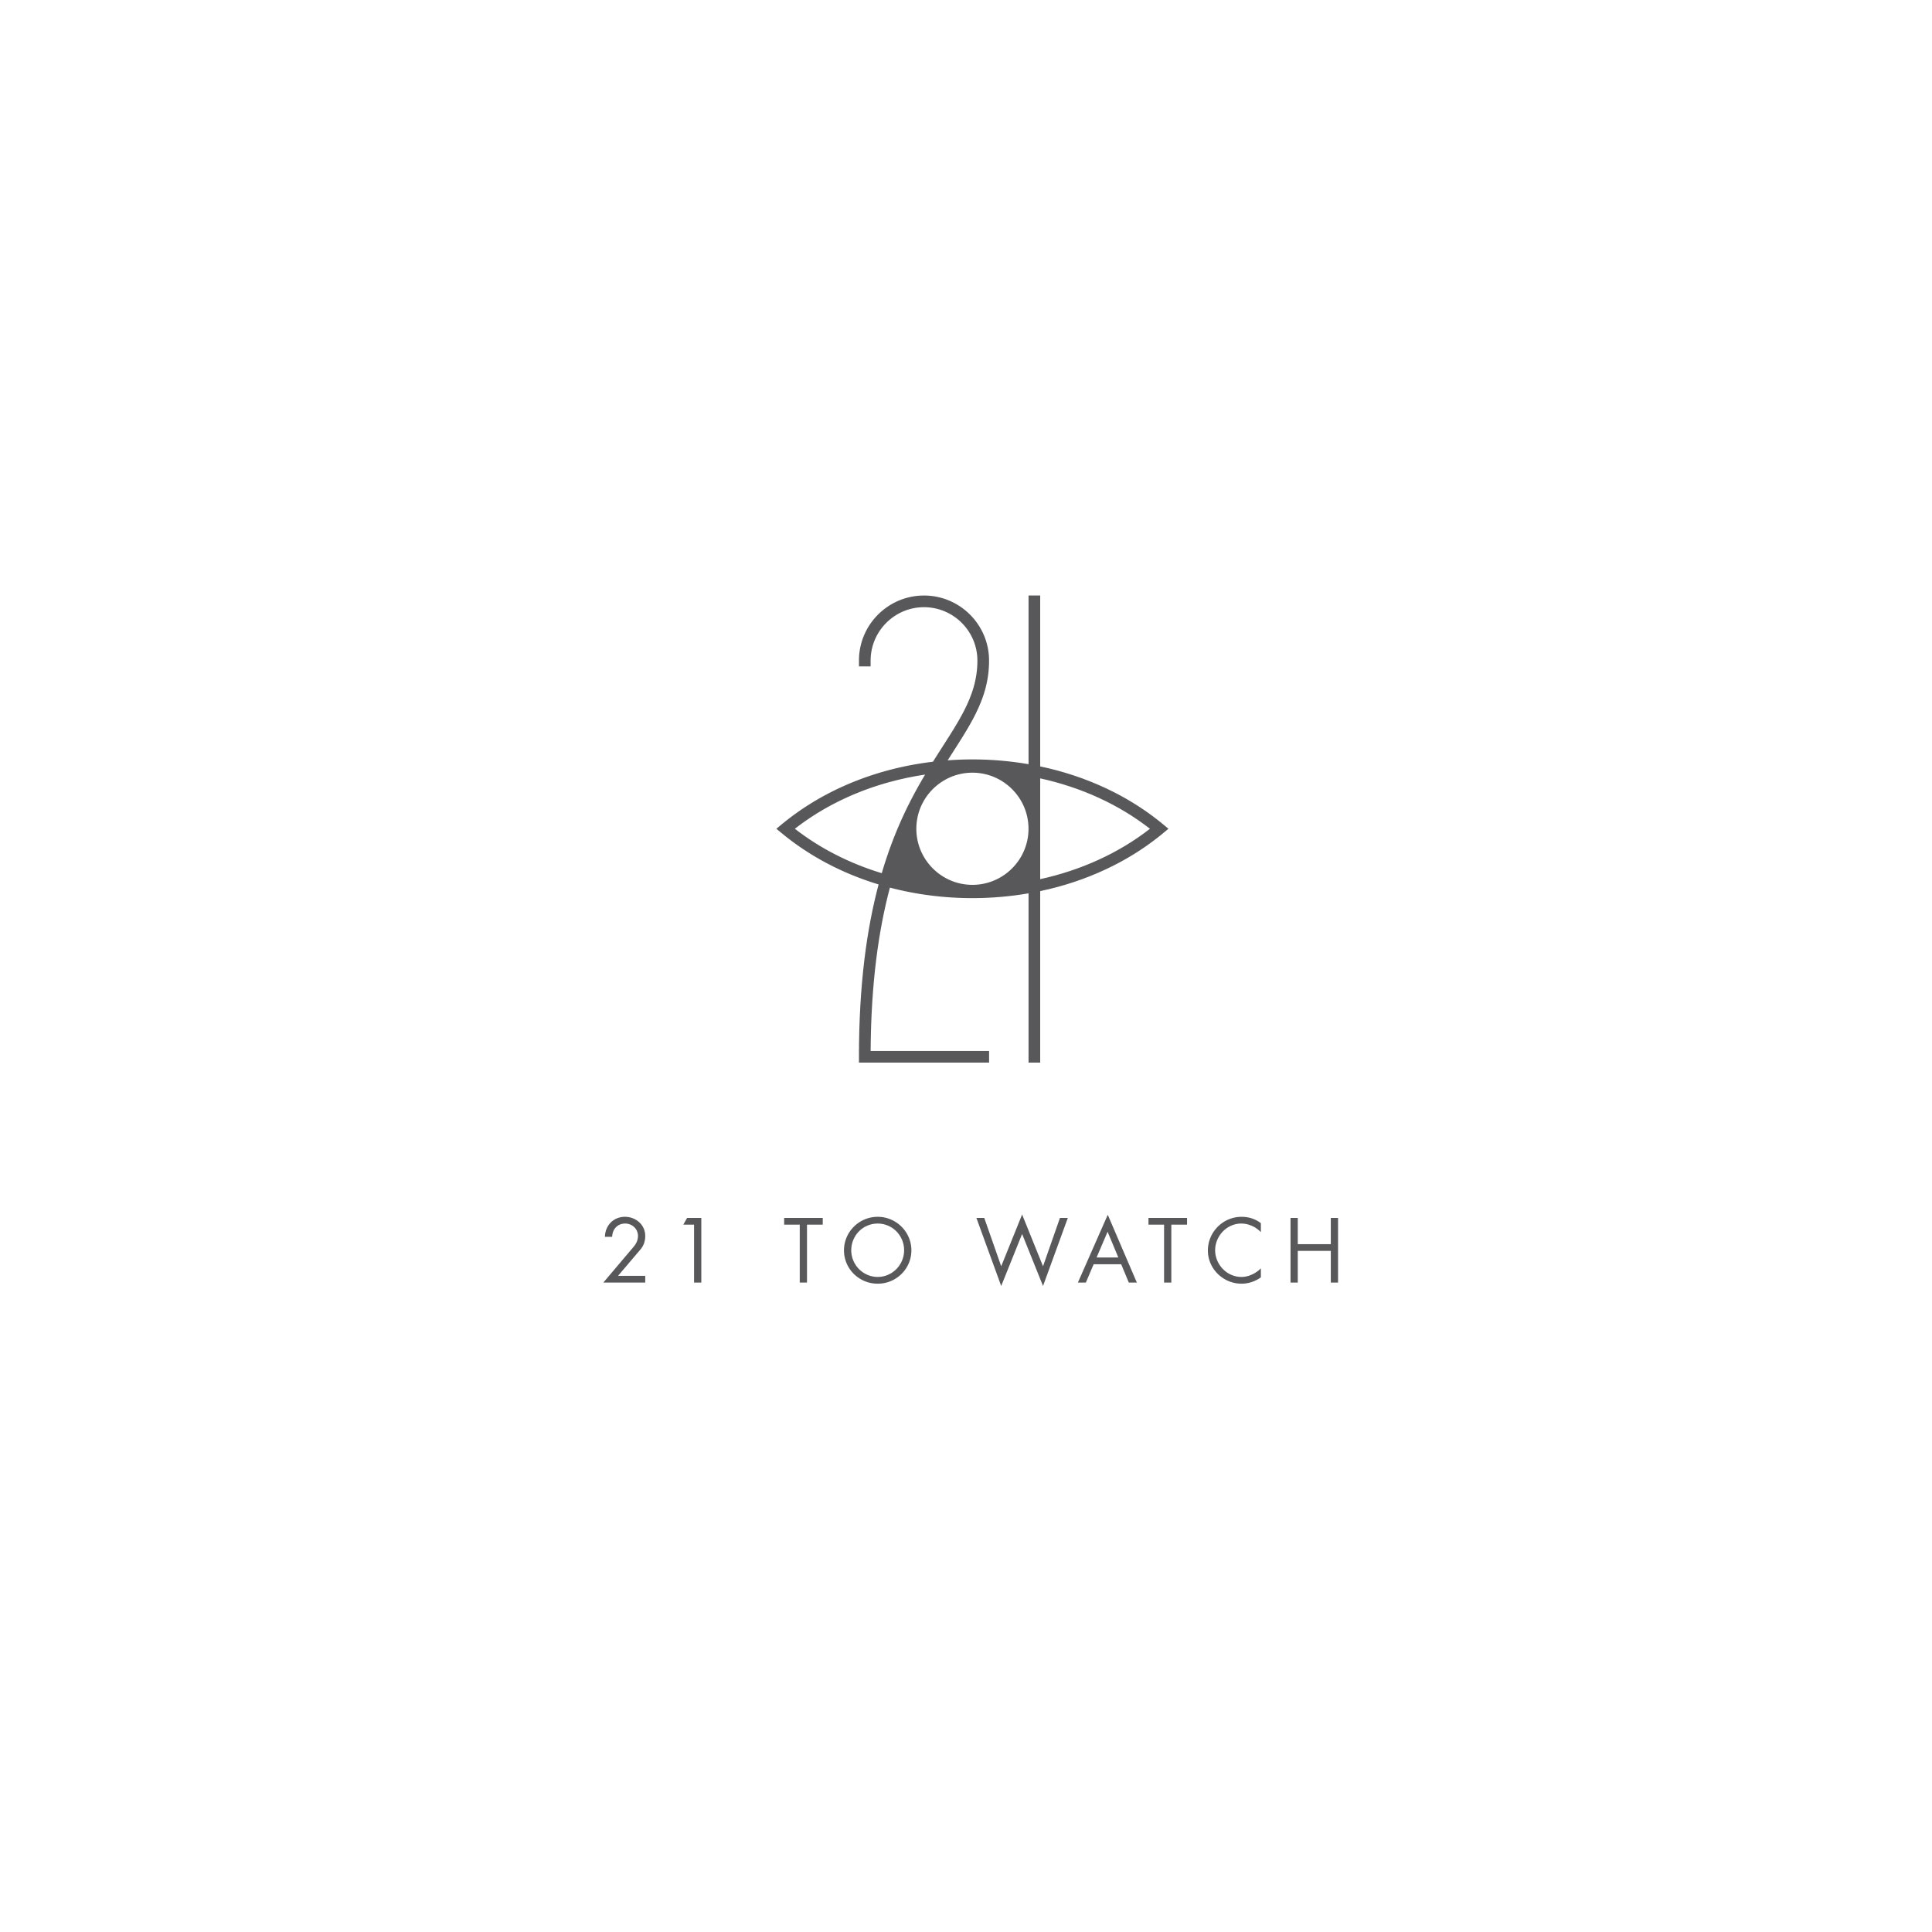 ND-twentyone-logo.jpg